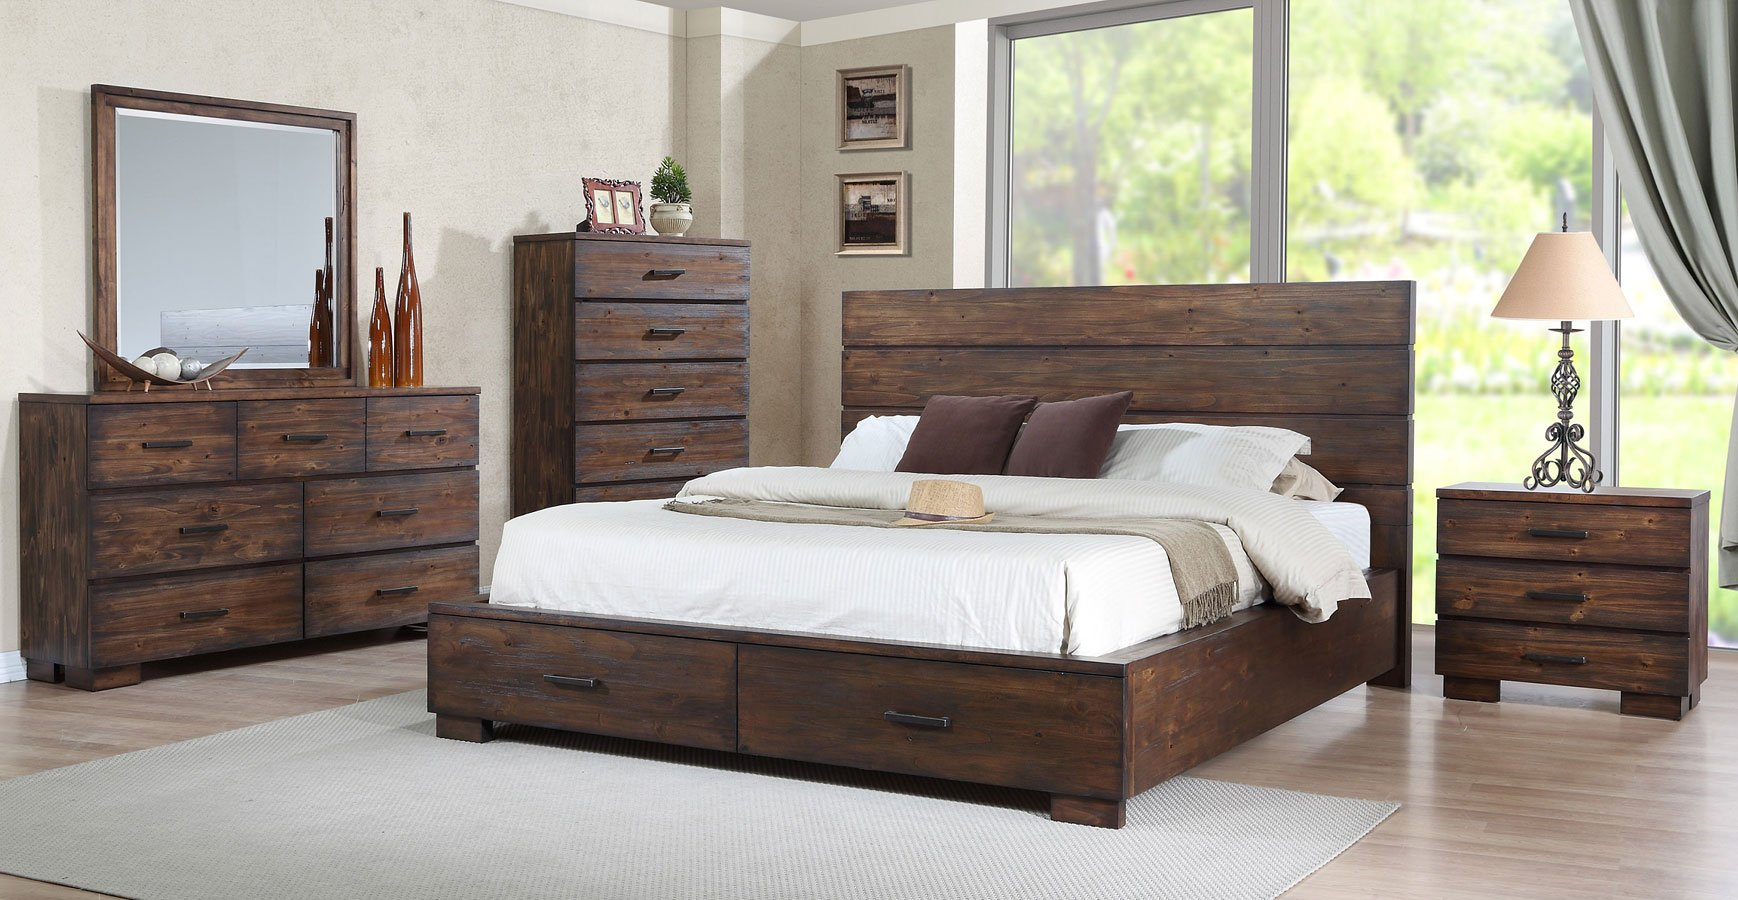 Cranston storage bedroom set bedroom furniture bedroom for Furniture markup